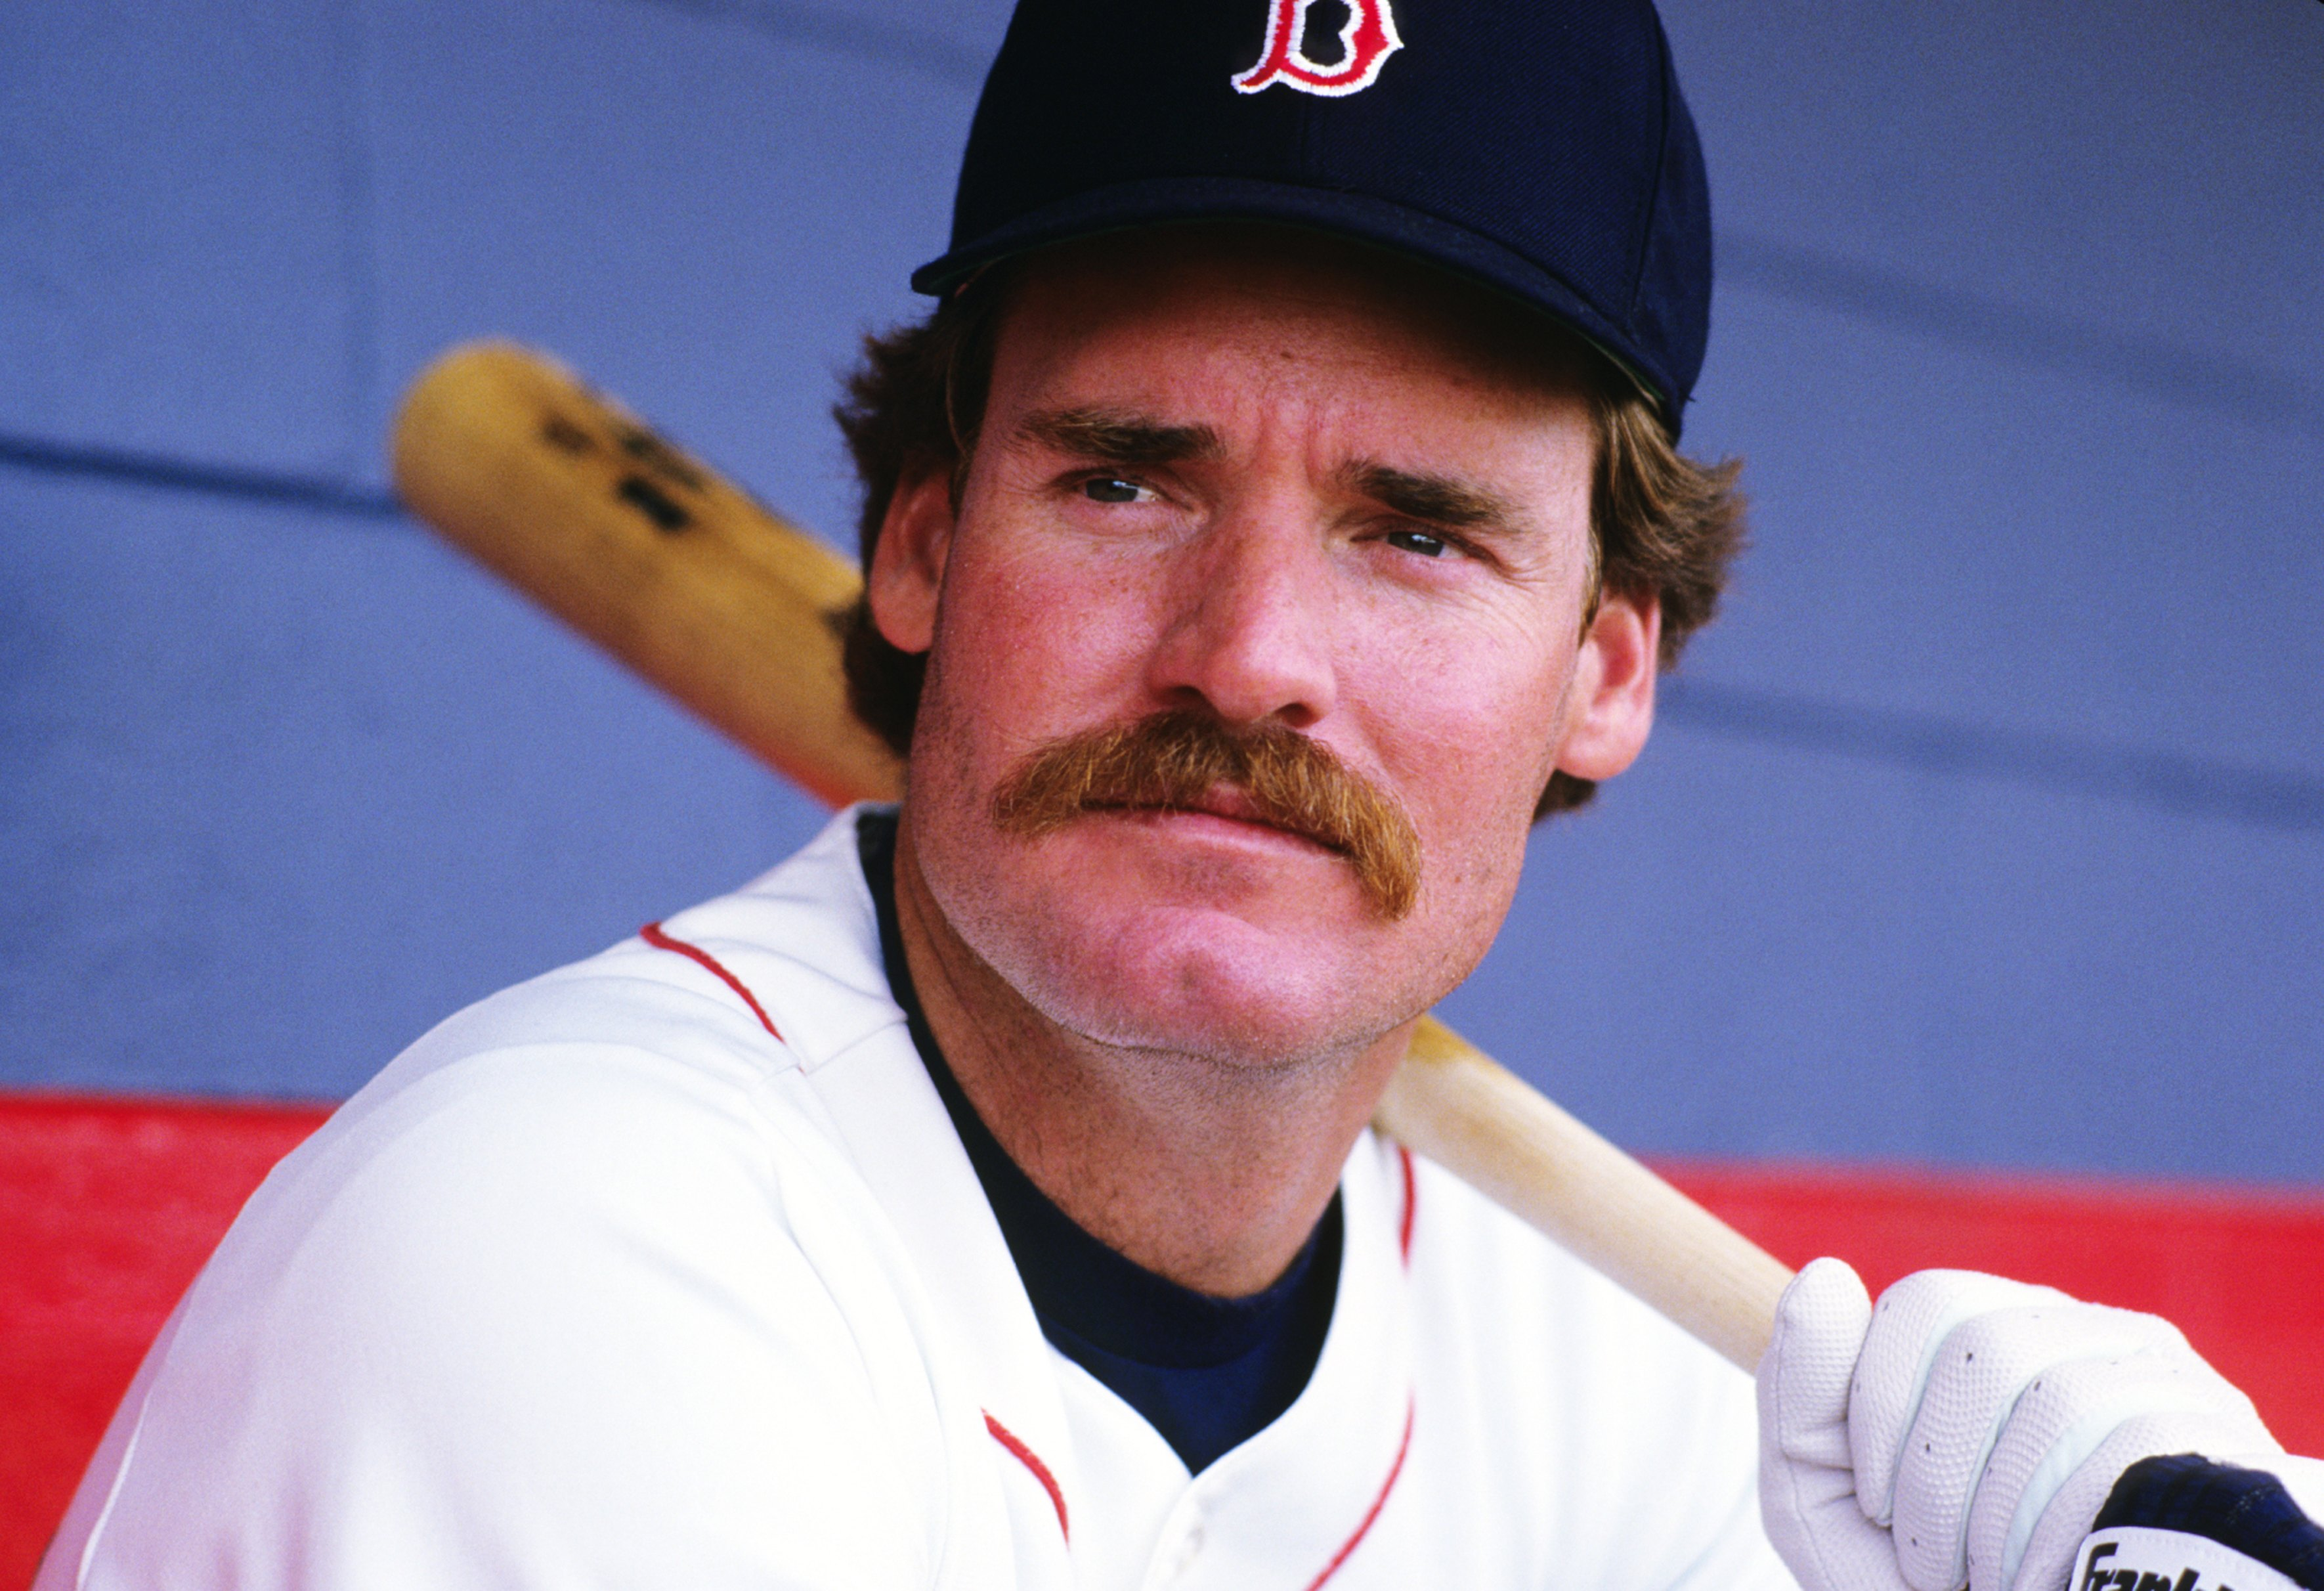 Wade Boggs Net Worth